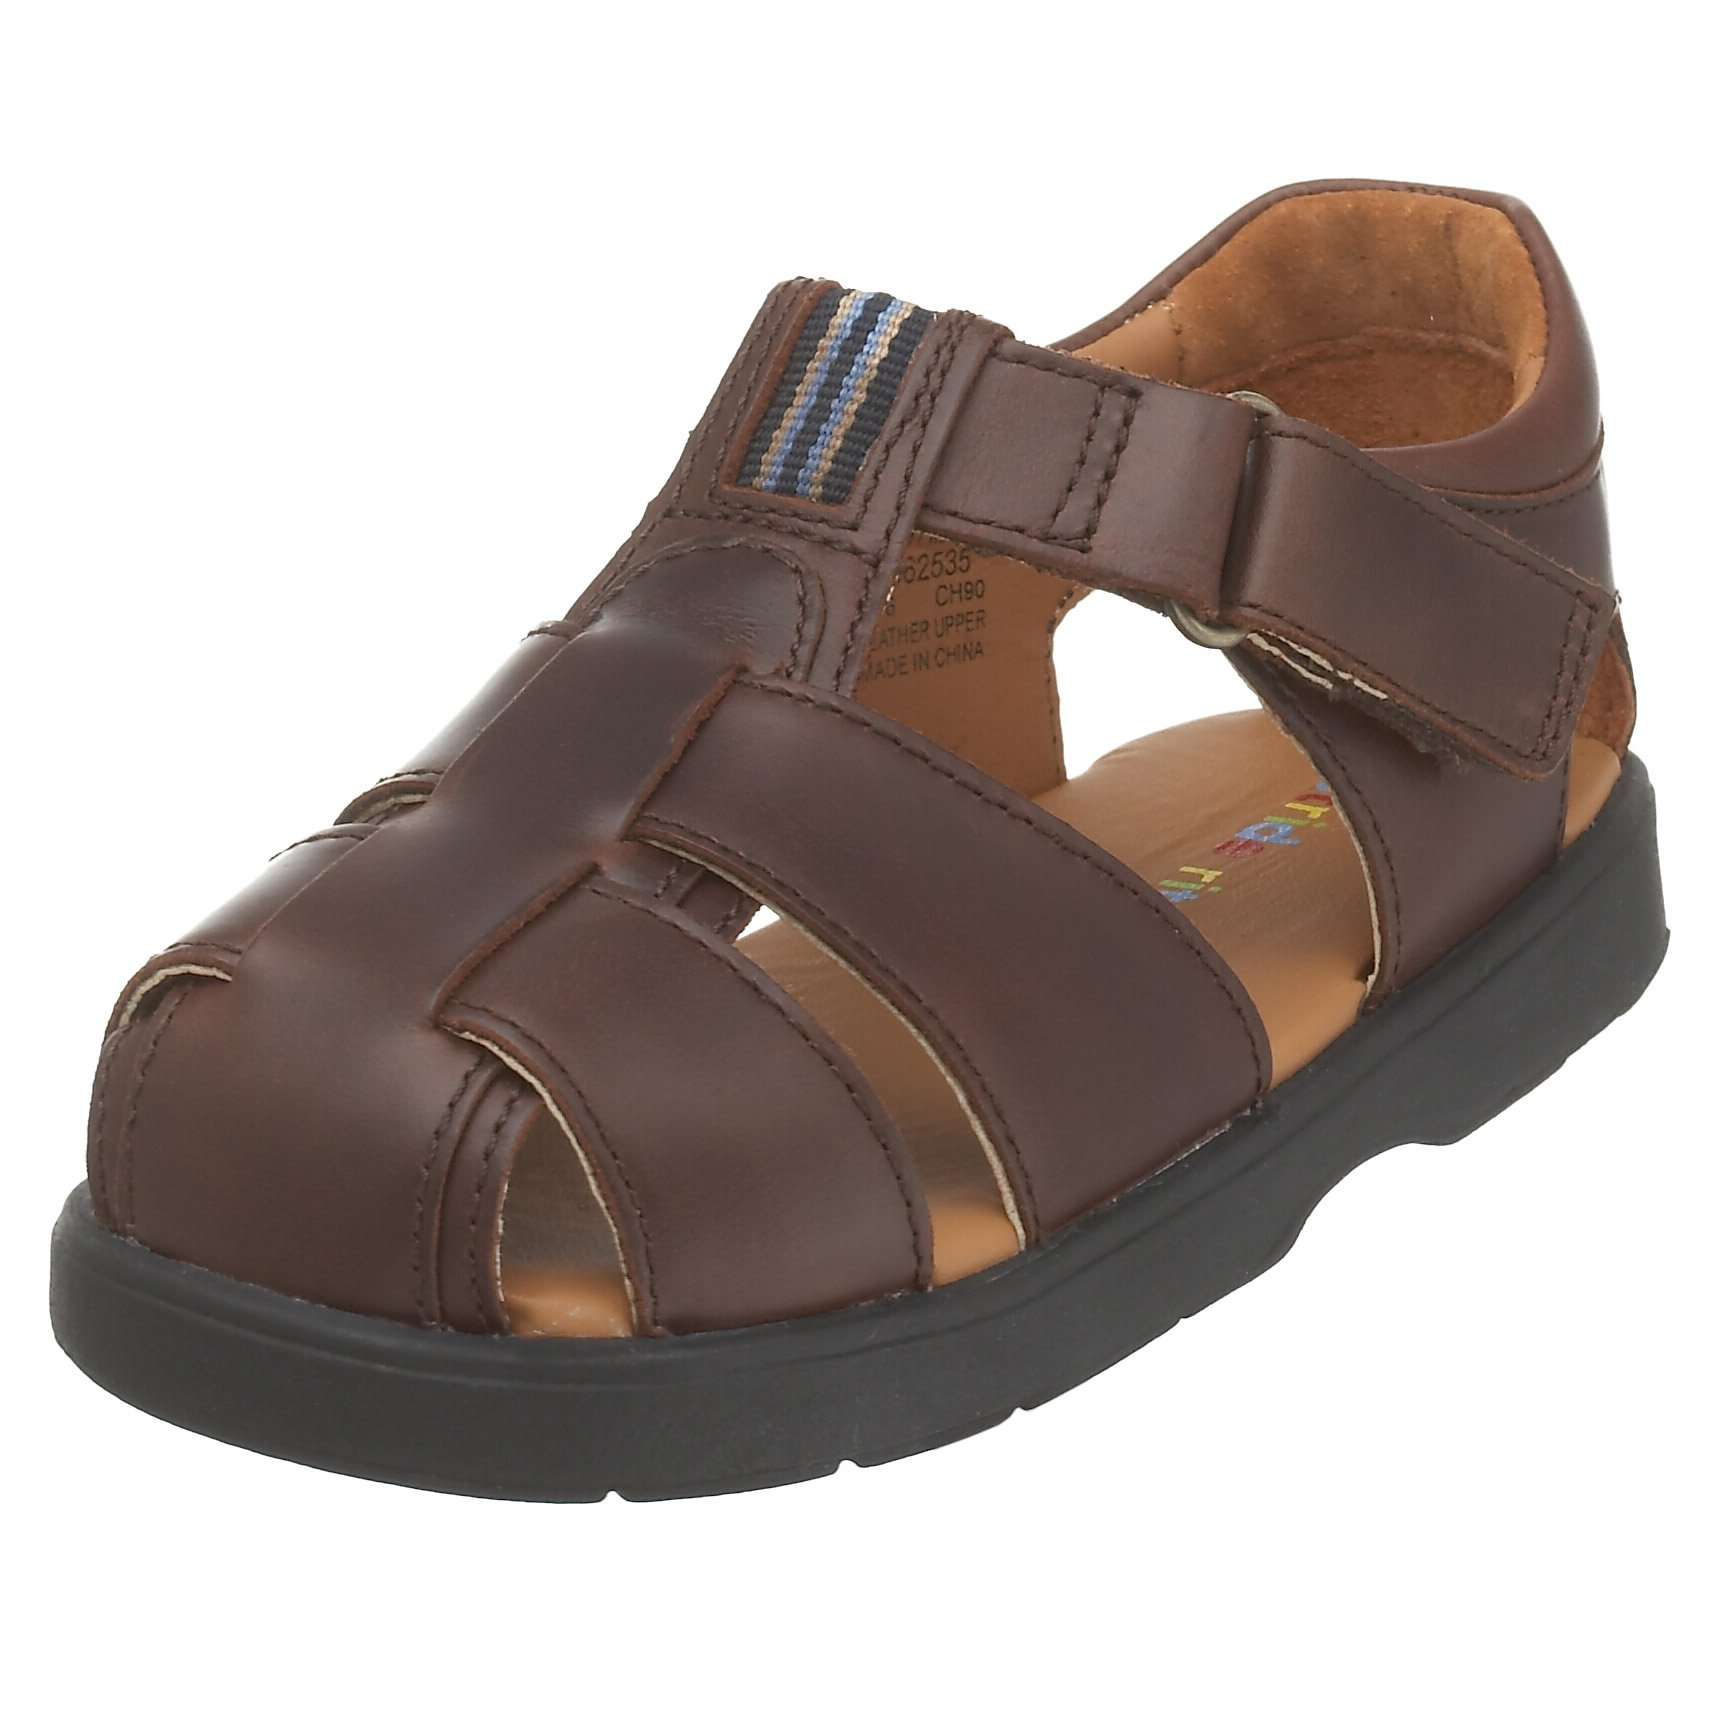 Stride Rite Infant/Toddler First Mate Sandal